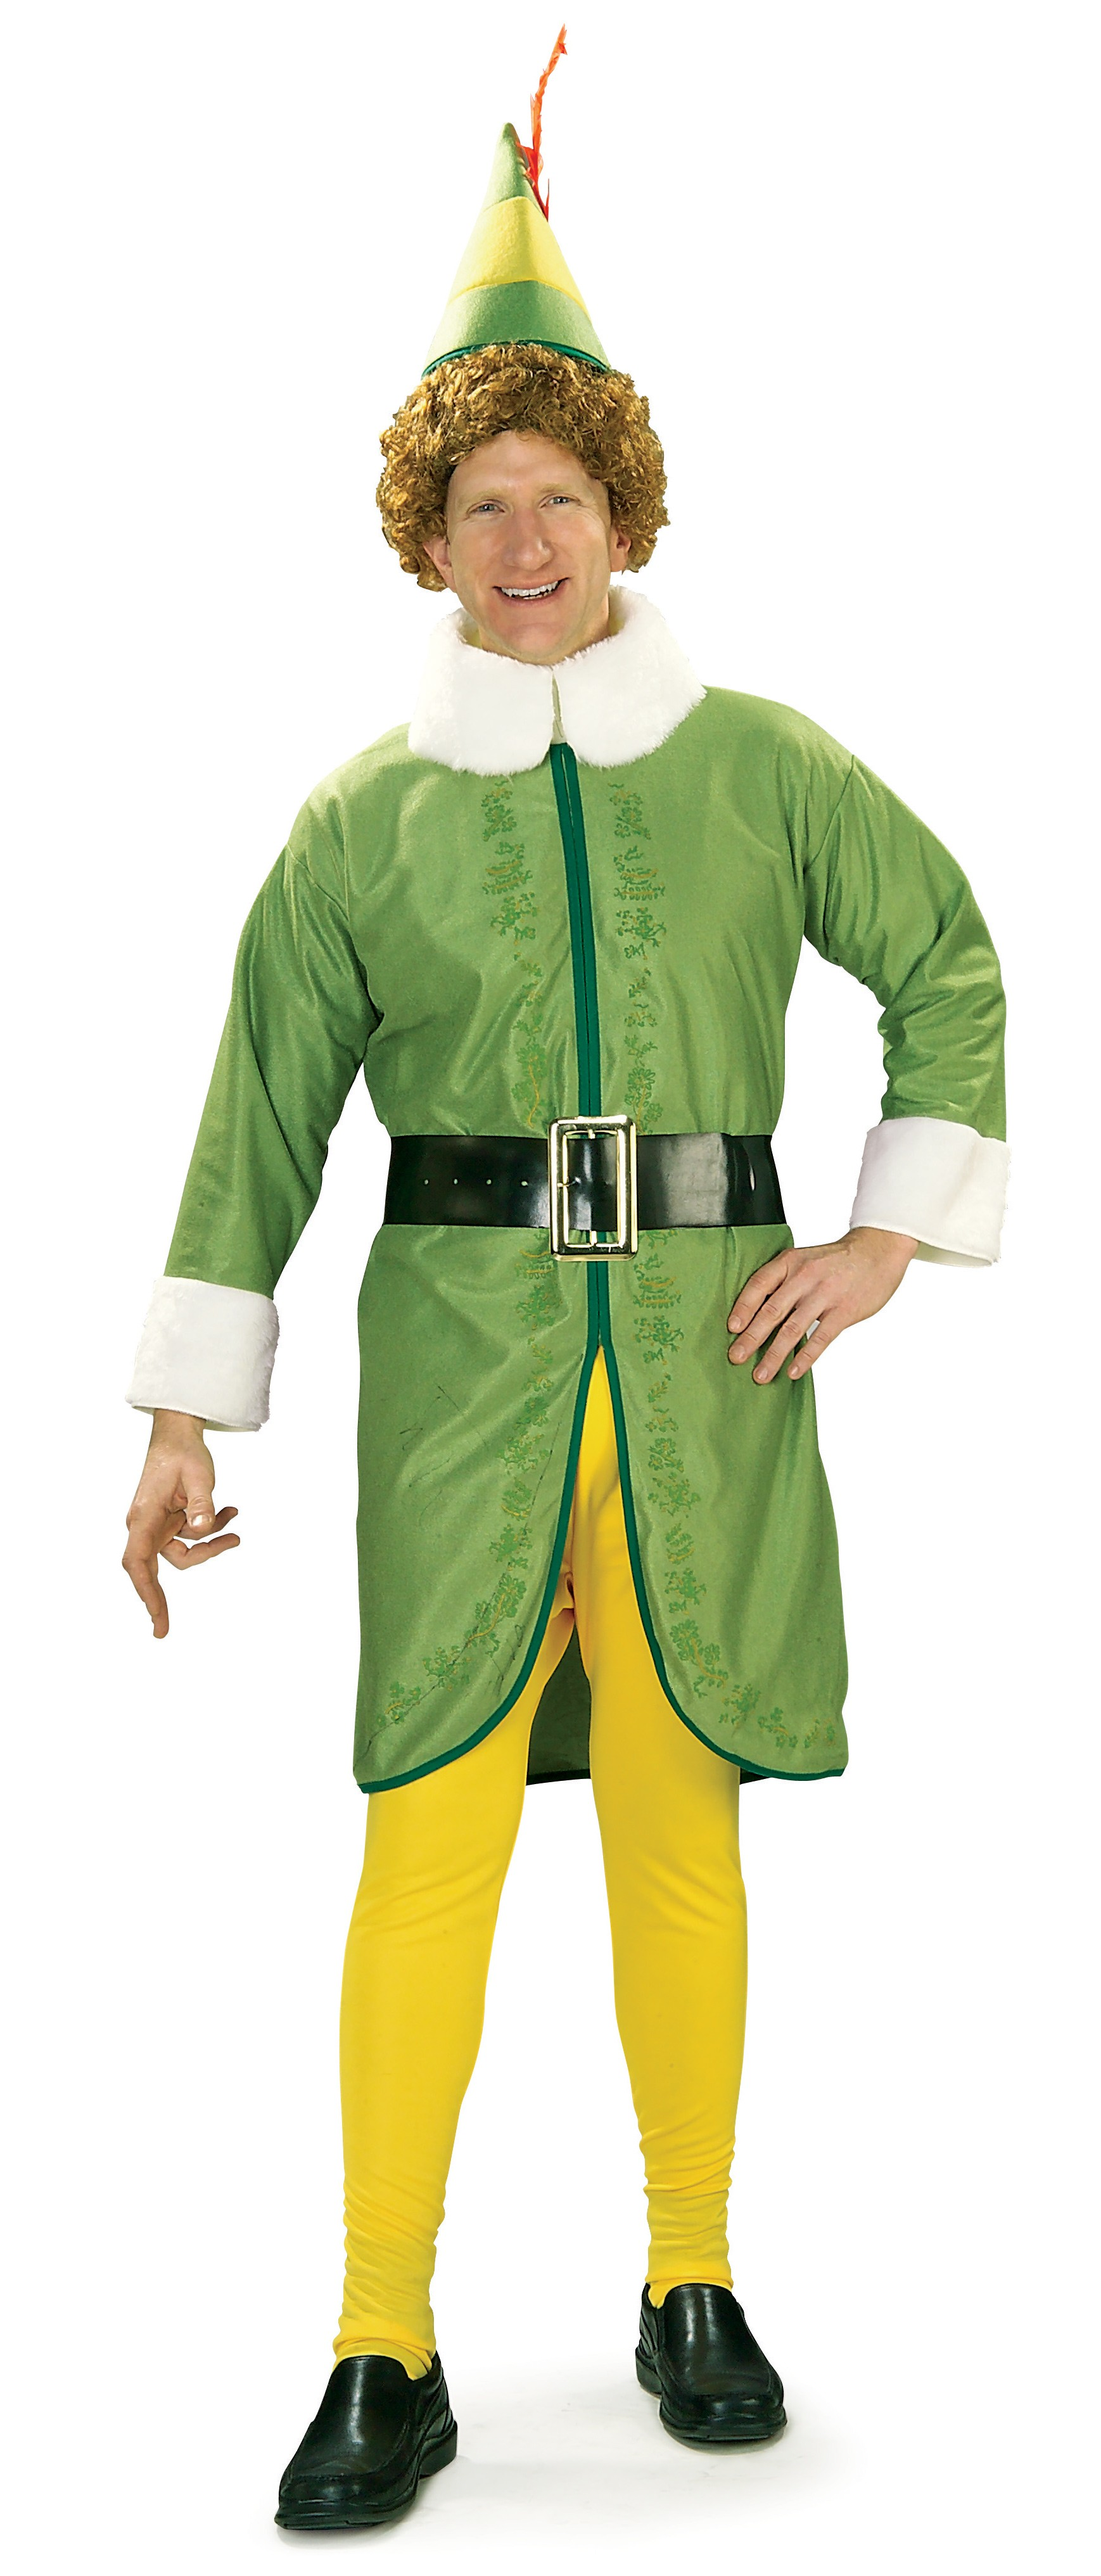 Adult Buddy Elf Costume | Costumes.com.au